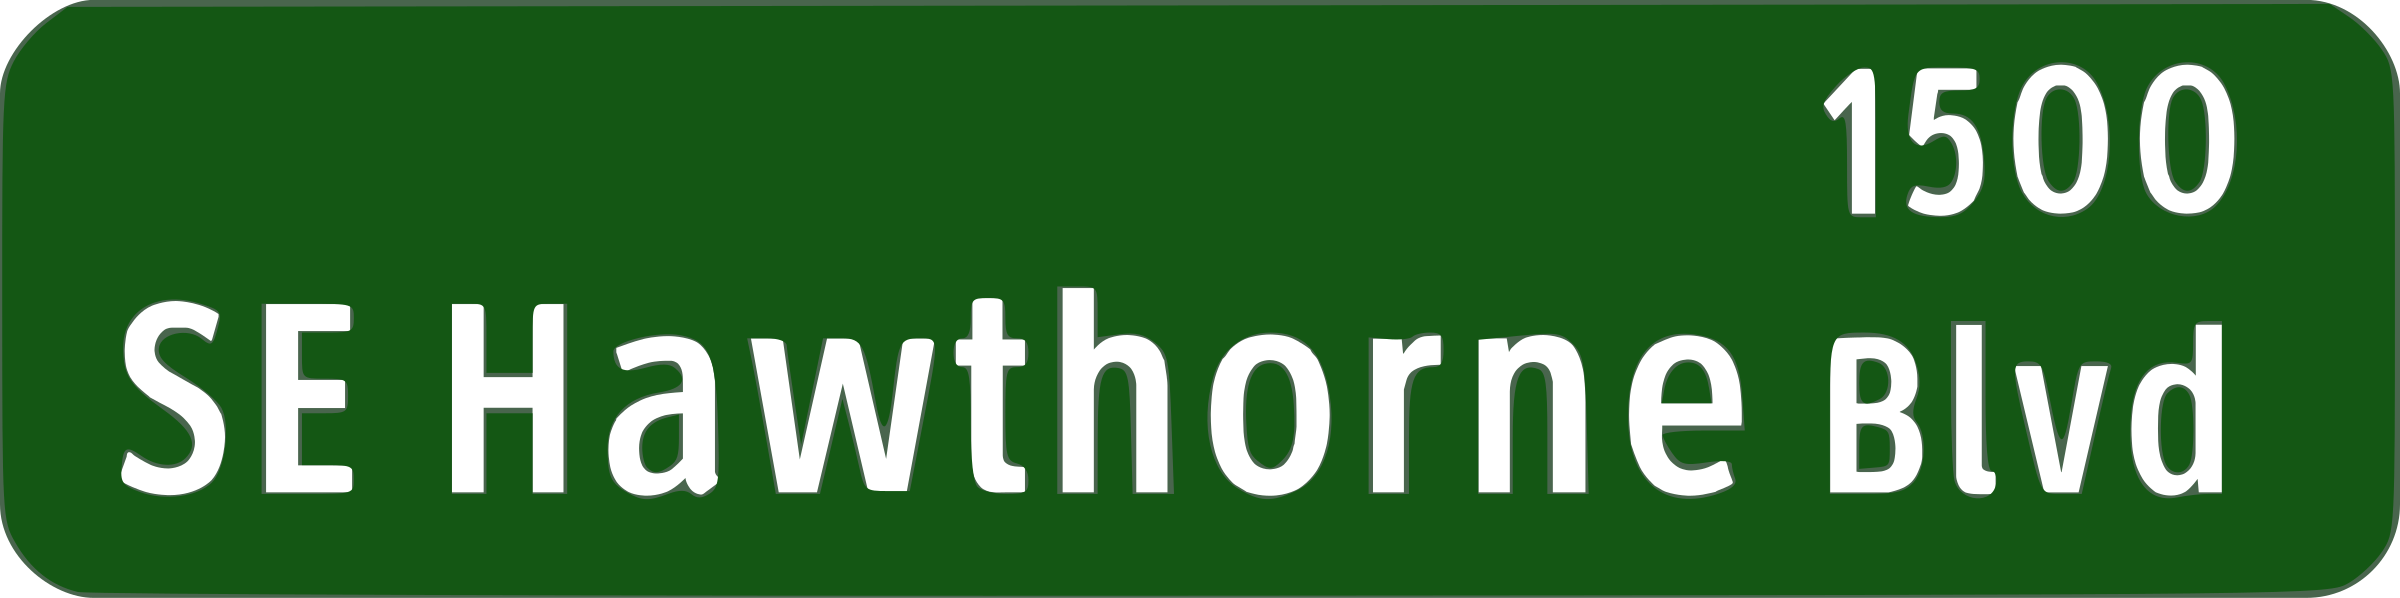 Portland Oregon street name sign: SE Hawthorne Blvd by missiridia